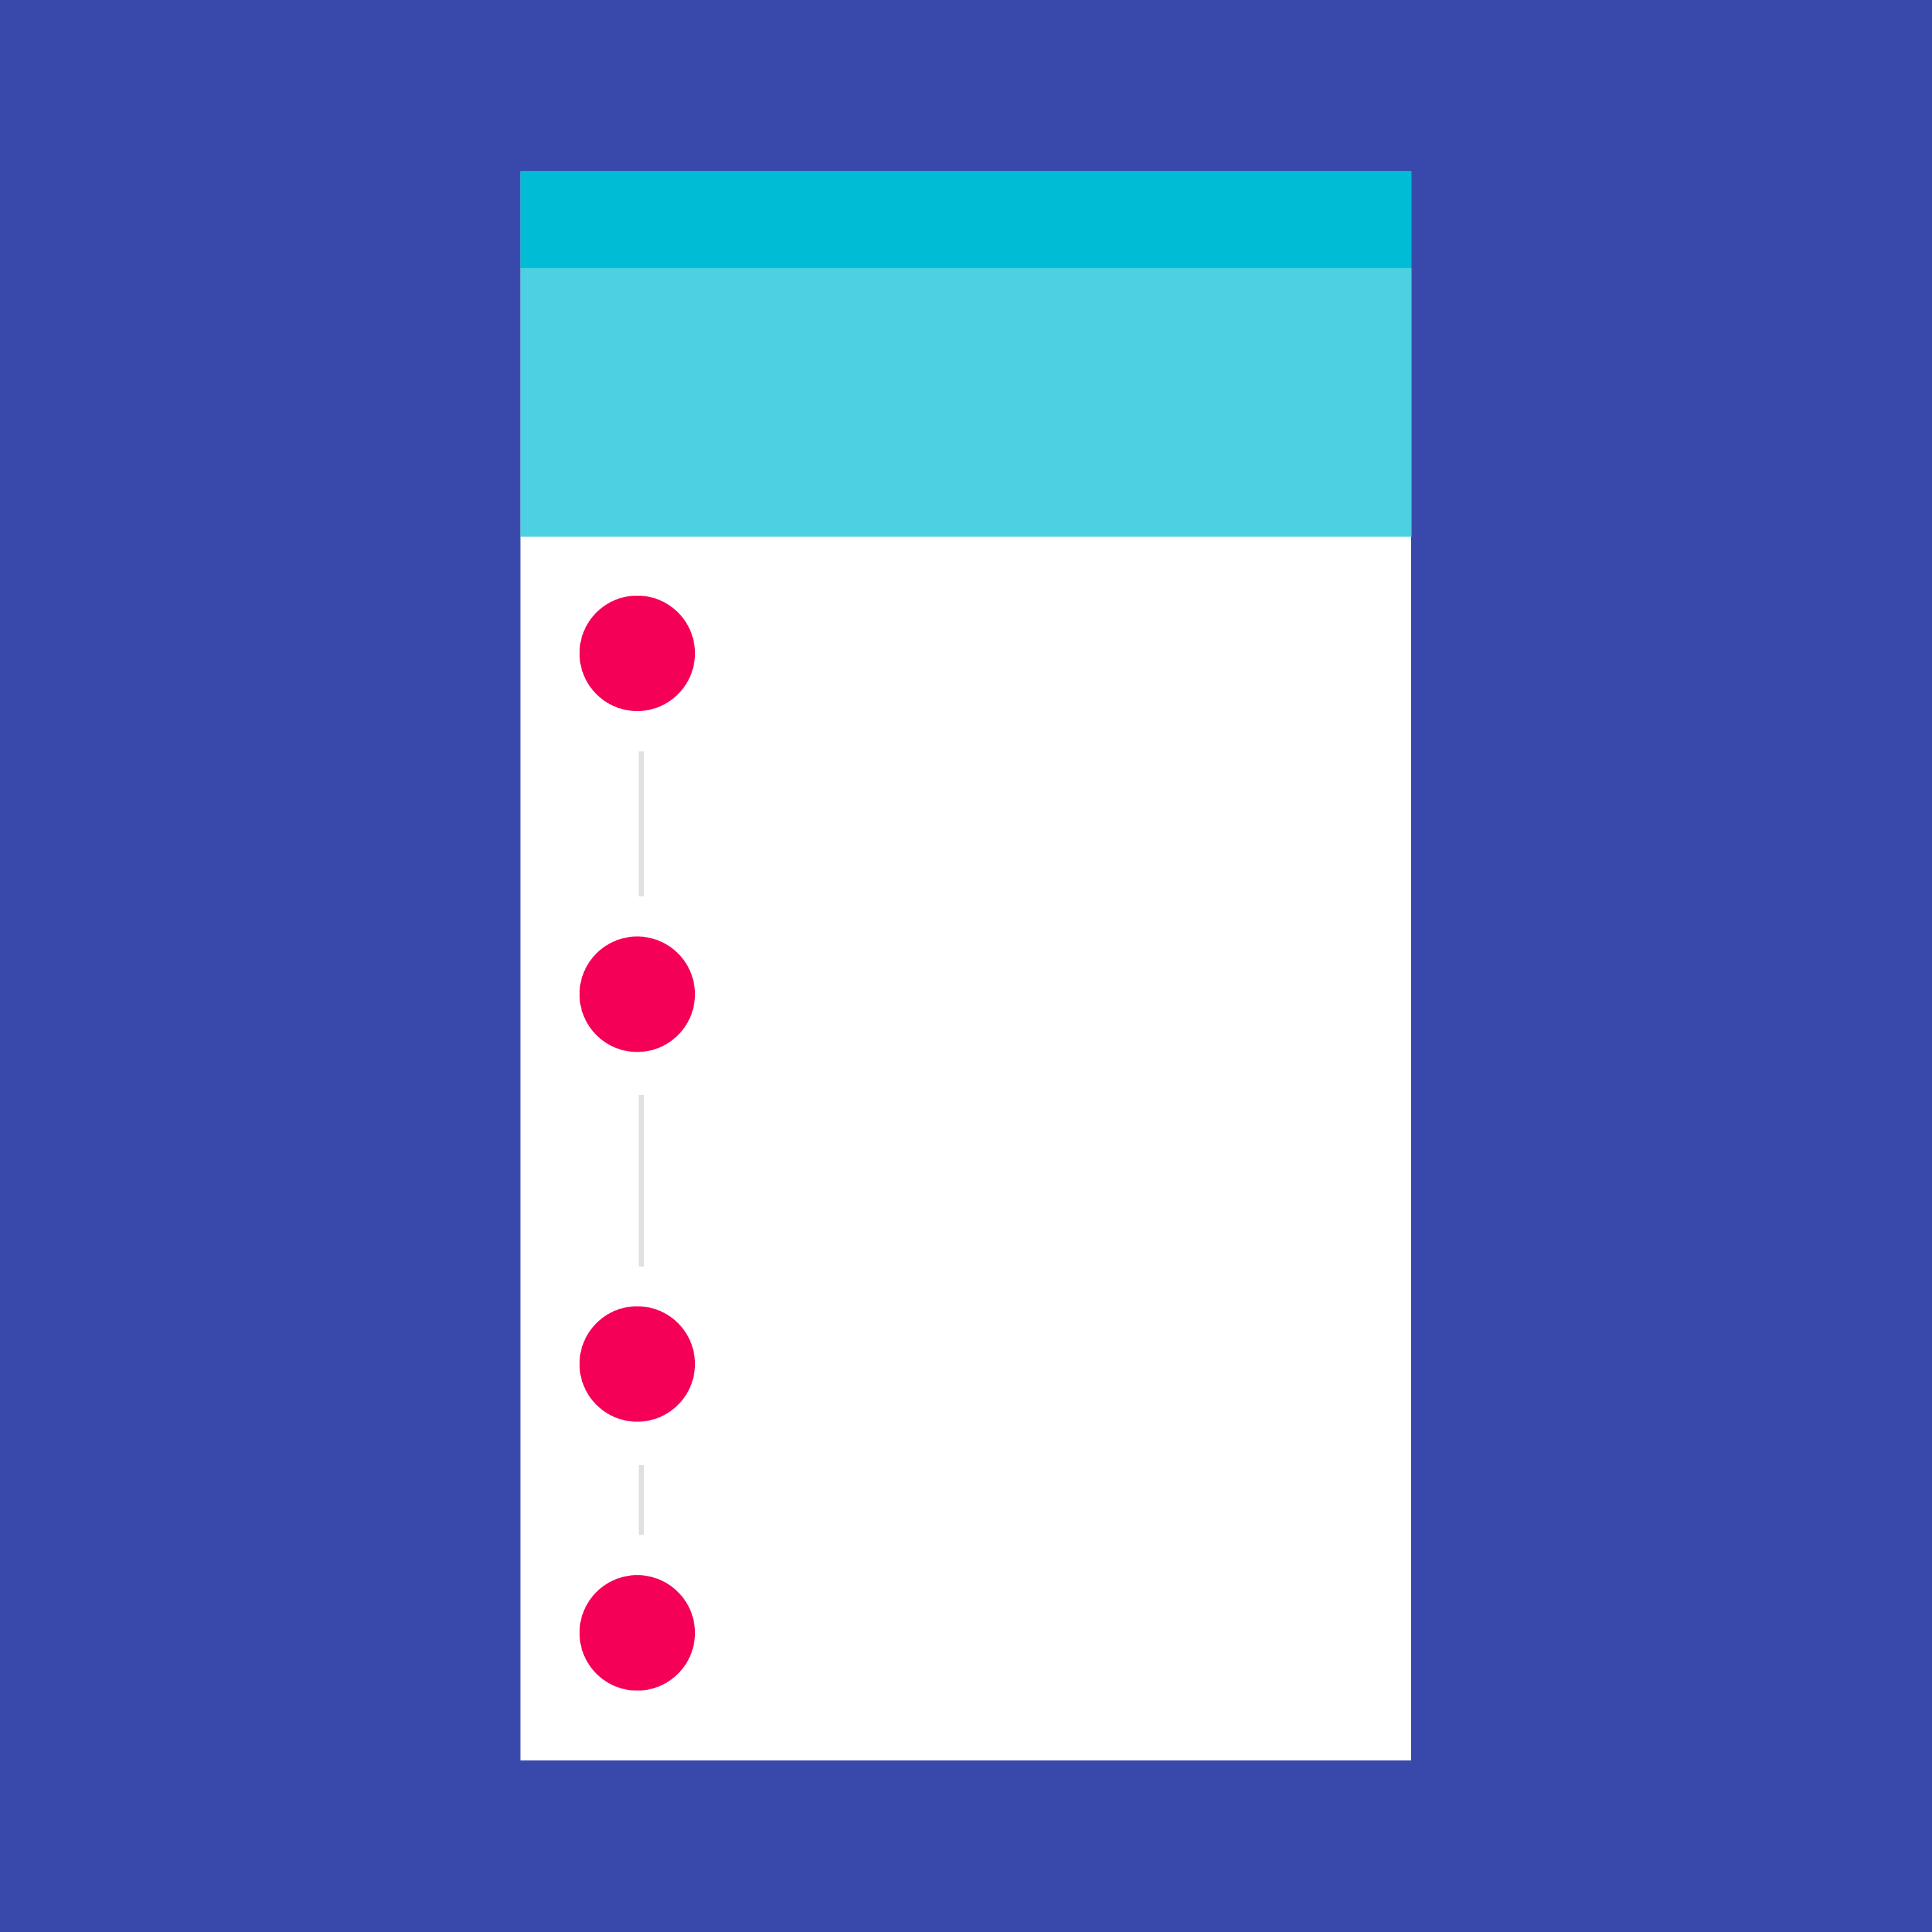 Steppers Components Material Design